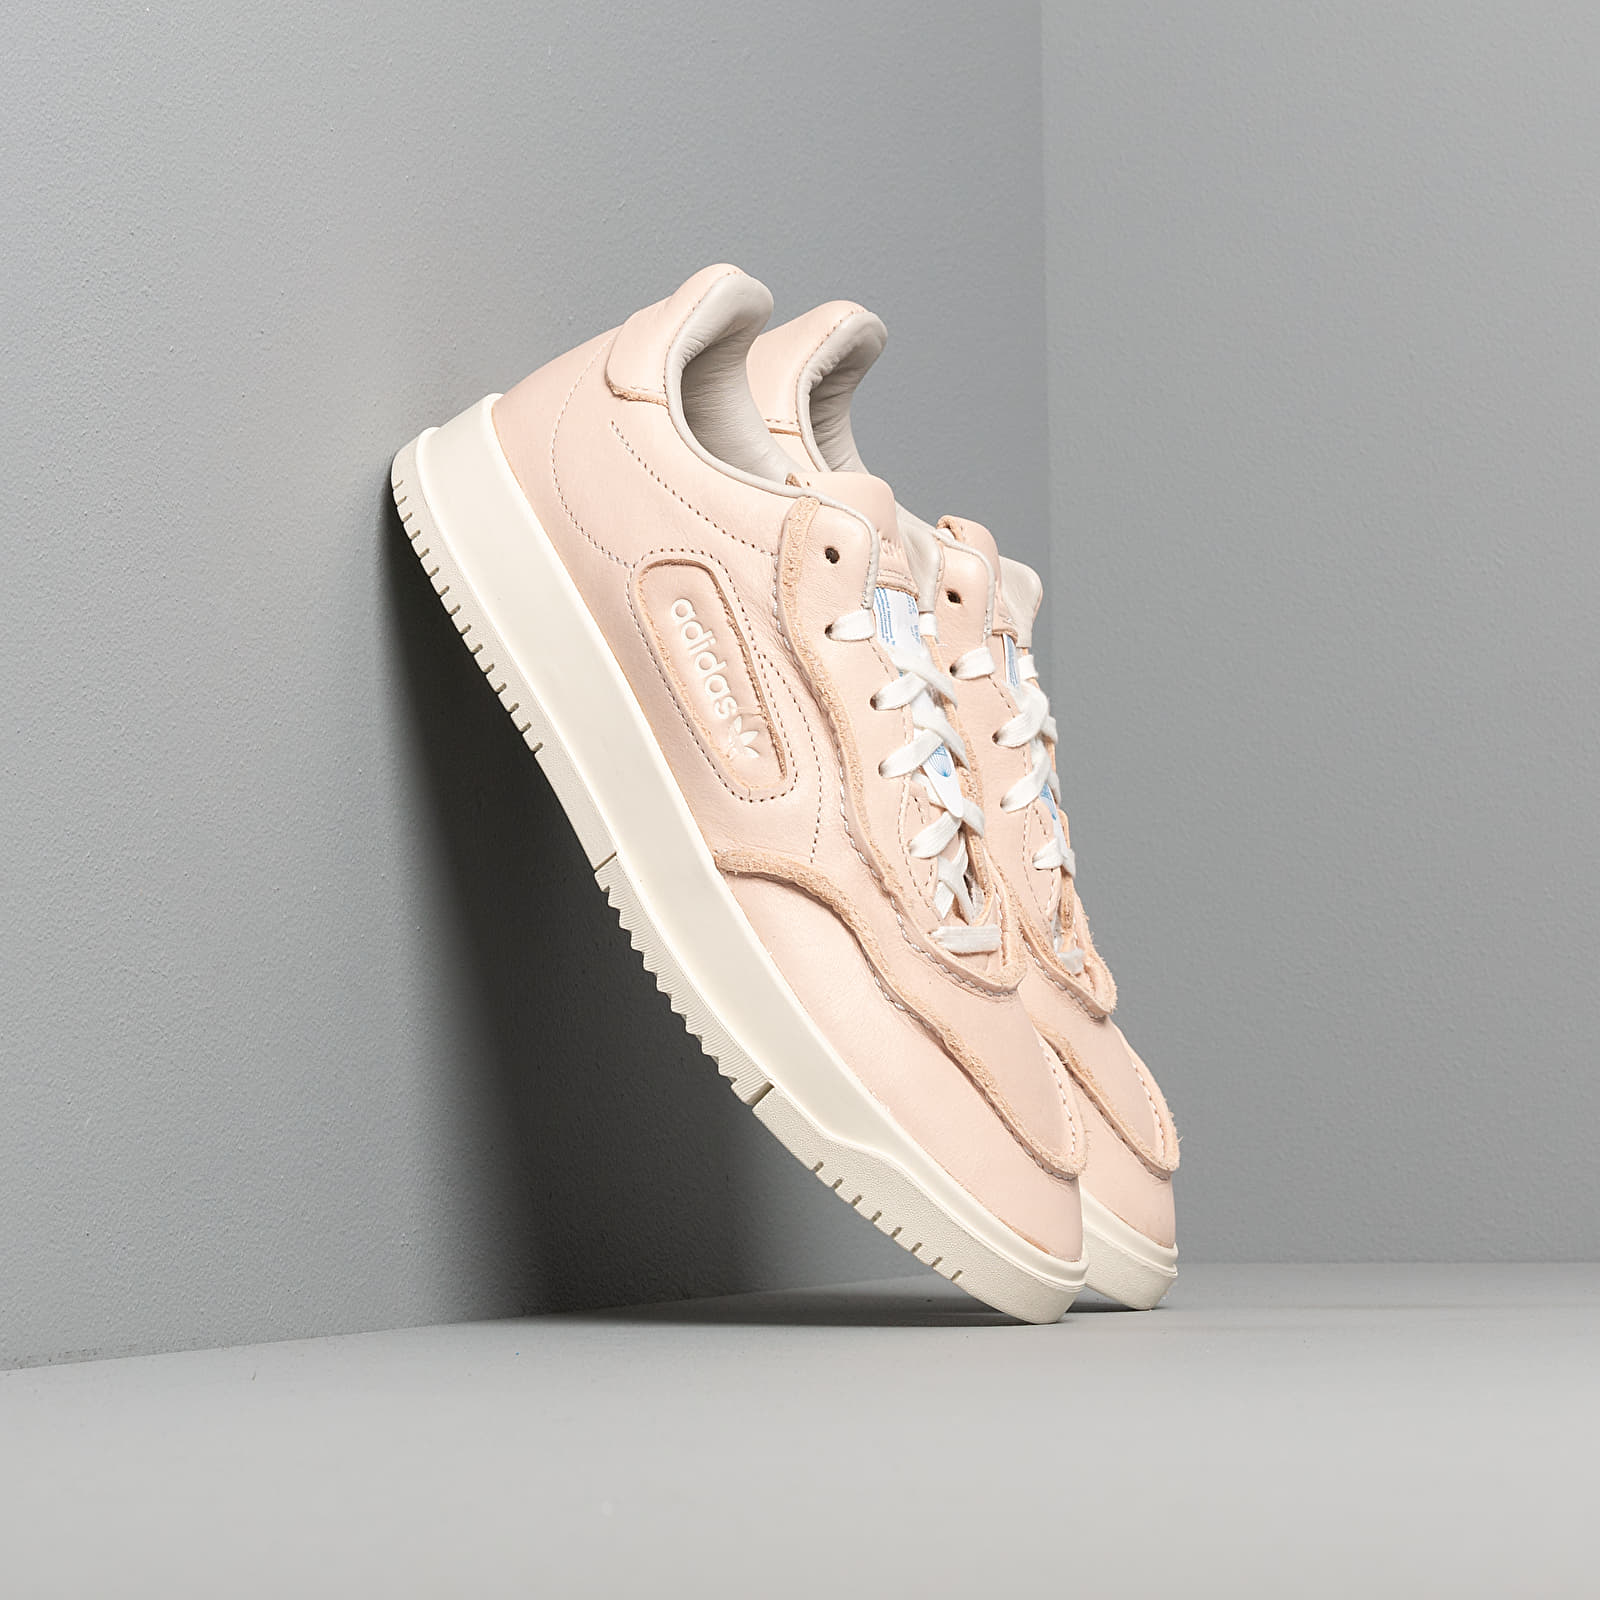 Men's shoes adidas SC Premiere Raw White/ Raw White/ Off White